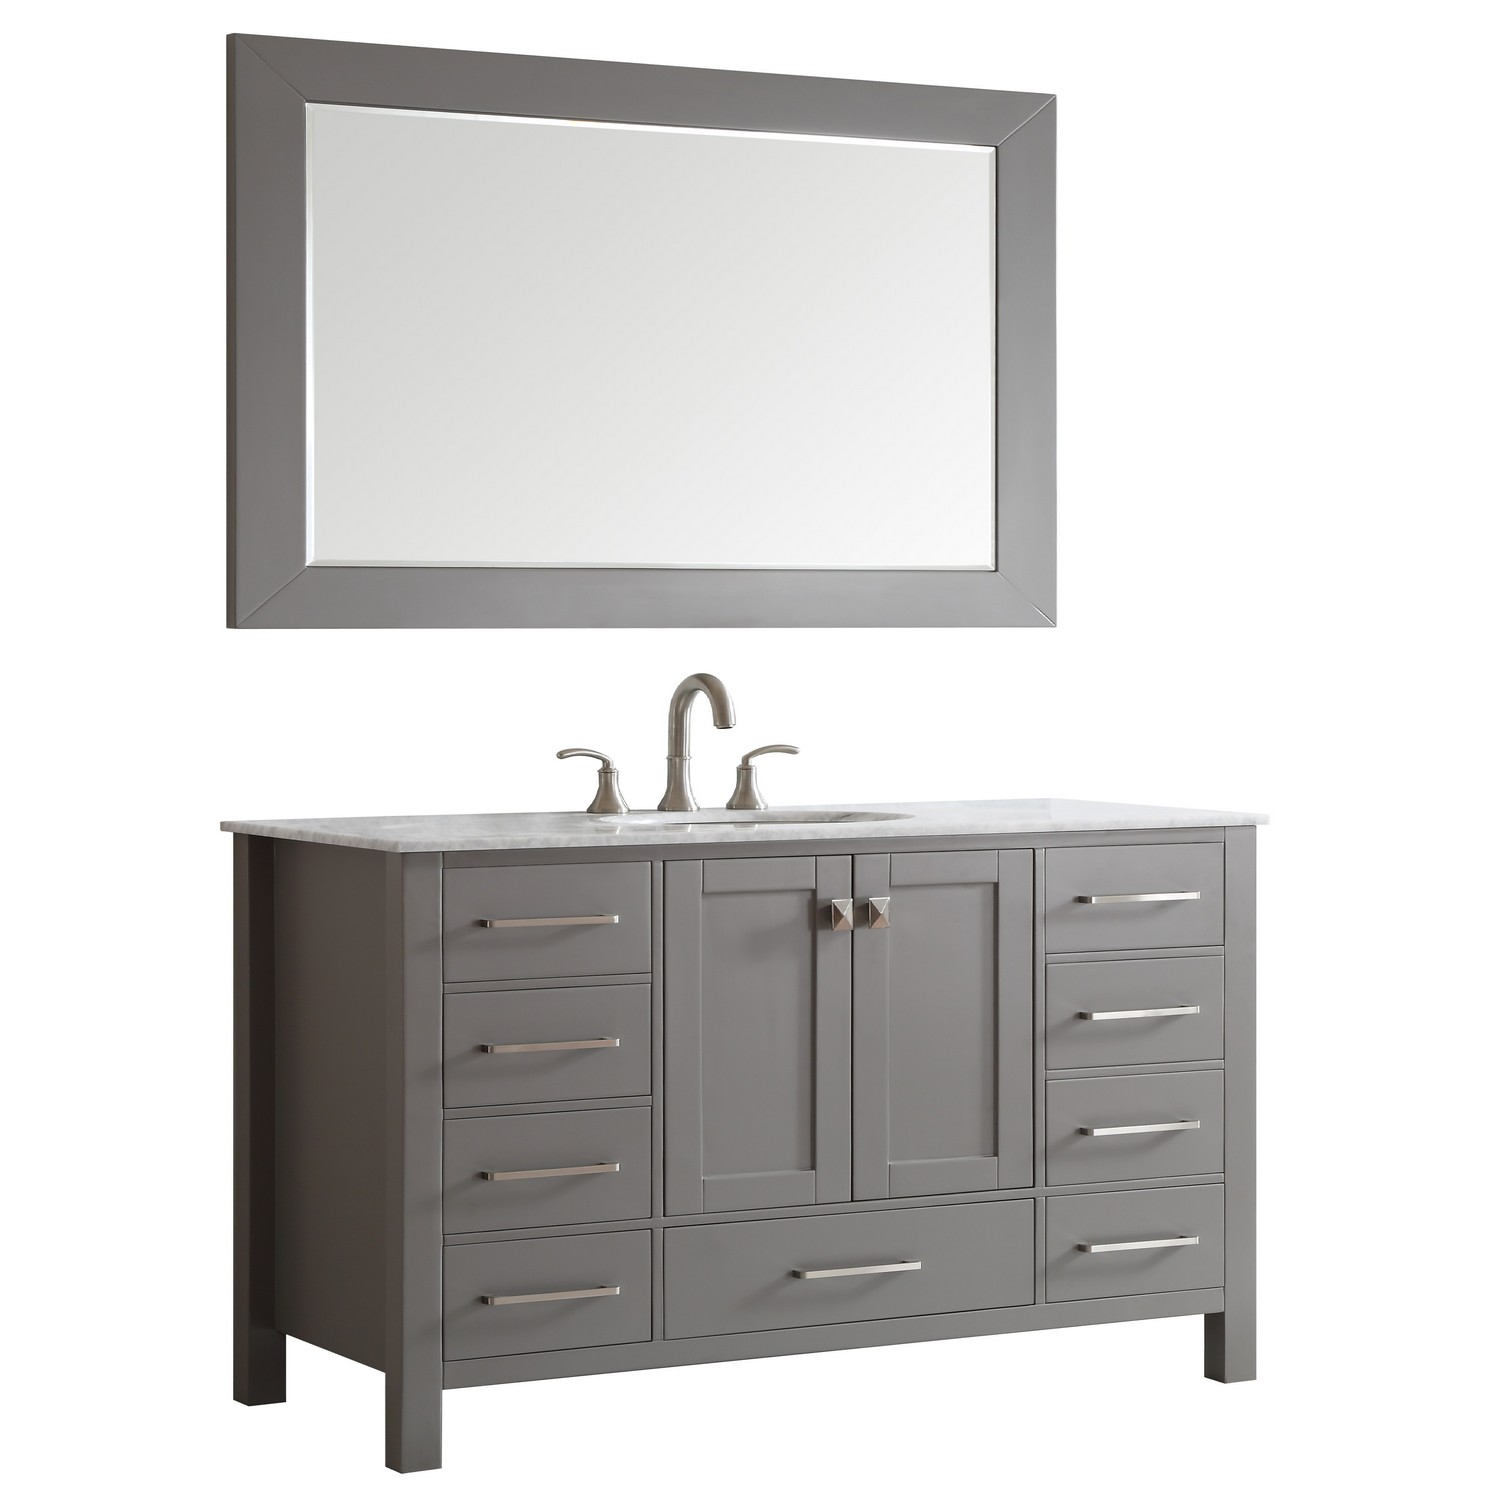 "EVVN412 60GR SS A Main - Eviva Aberdeen 60"" Transitional Grey Single Bathroom Vanity with White Carrera Countertop"